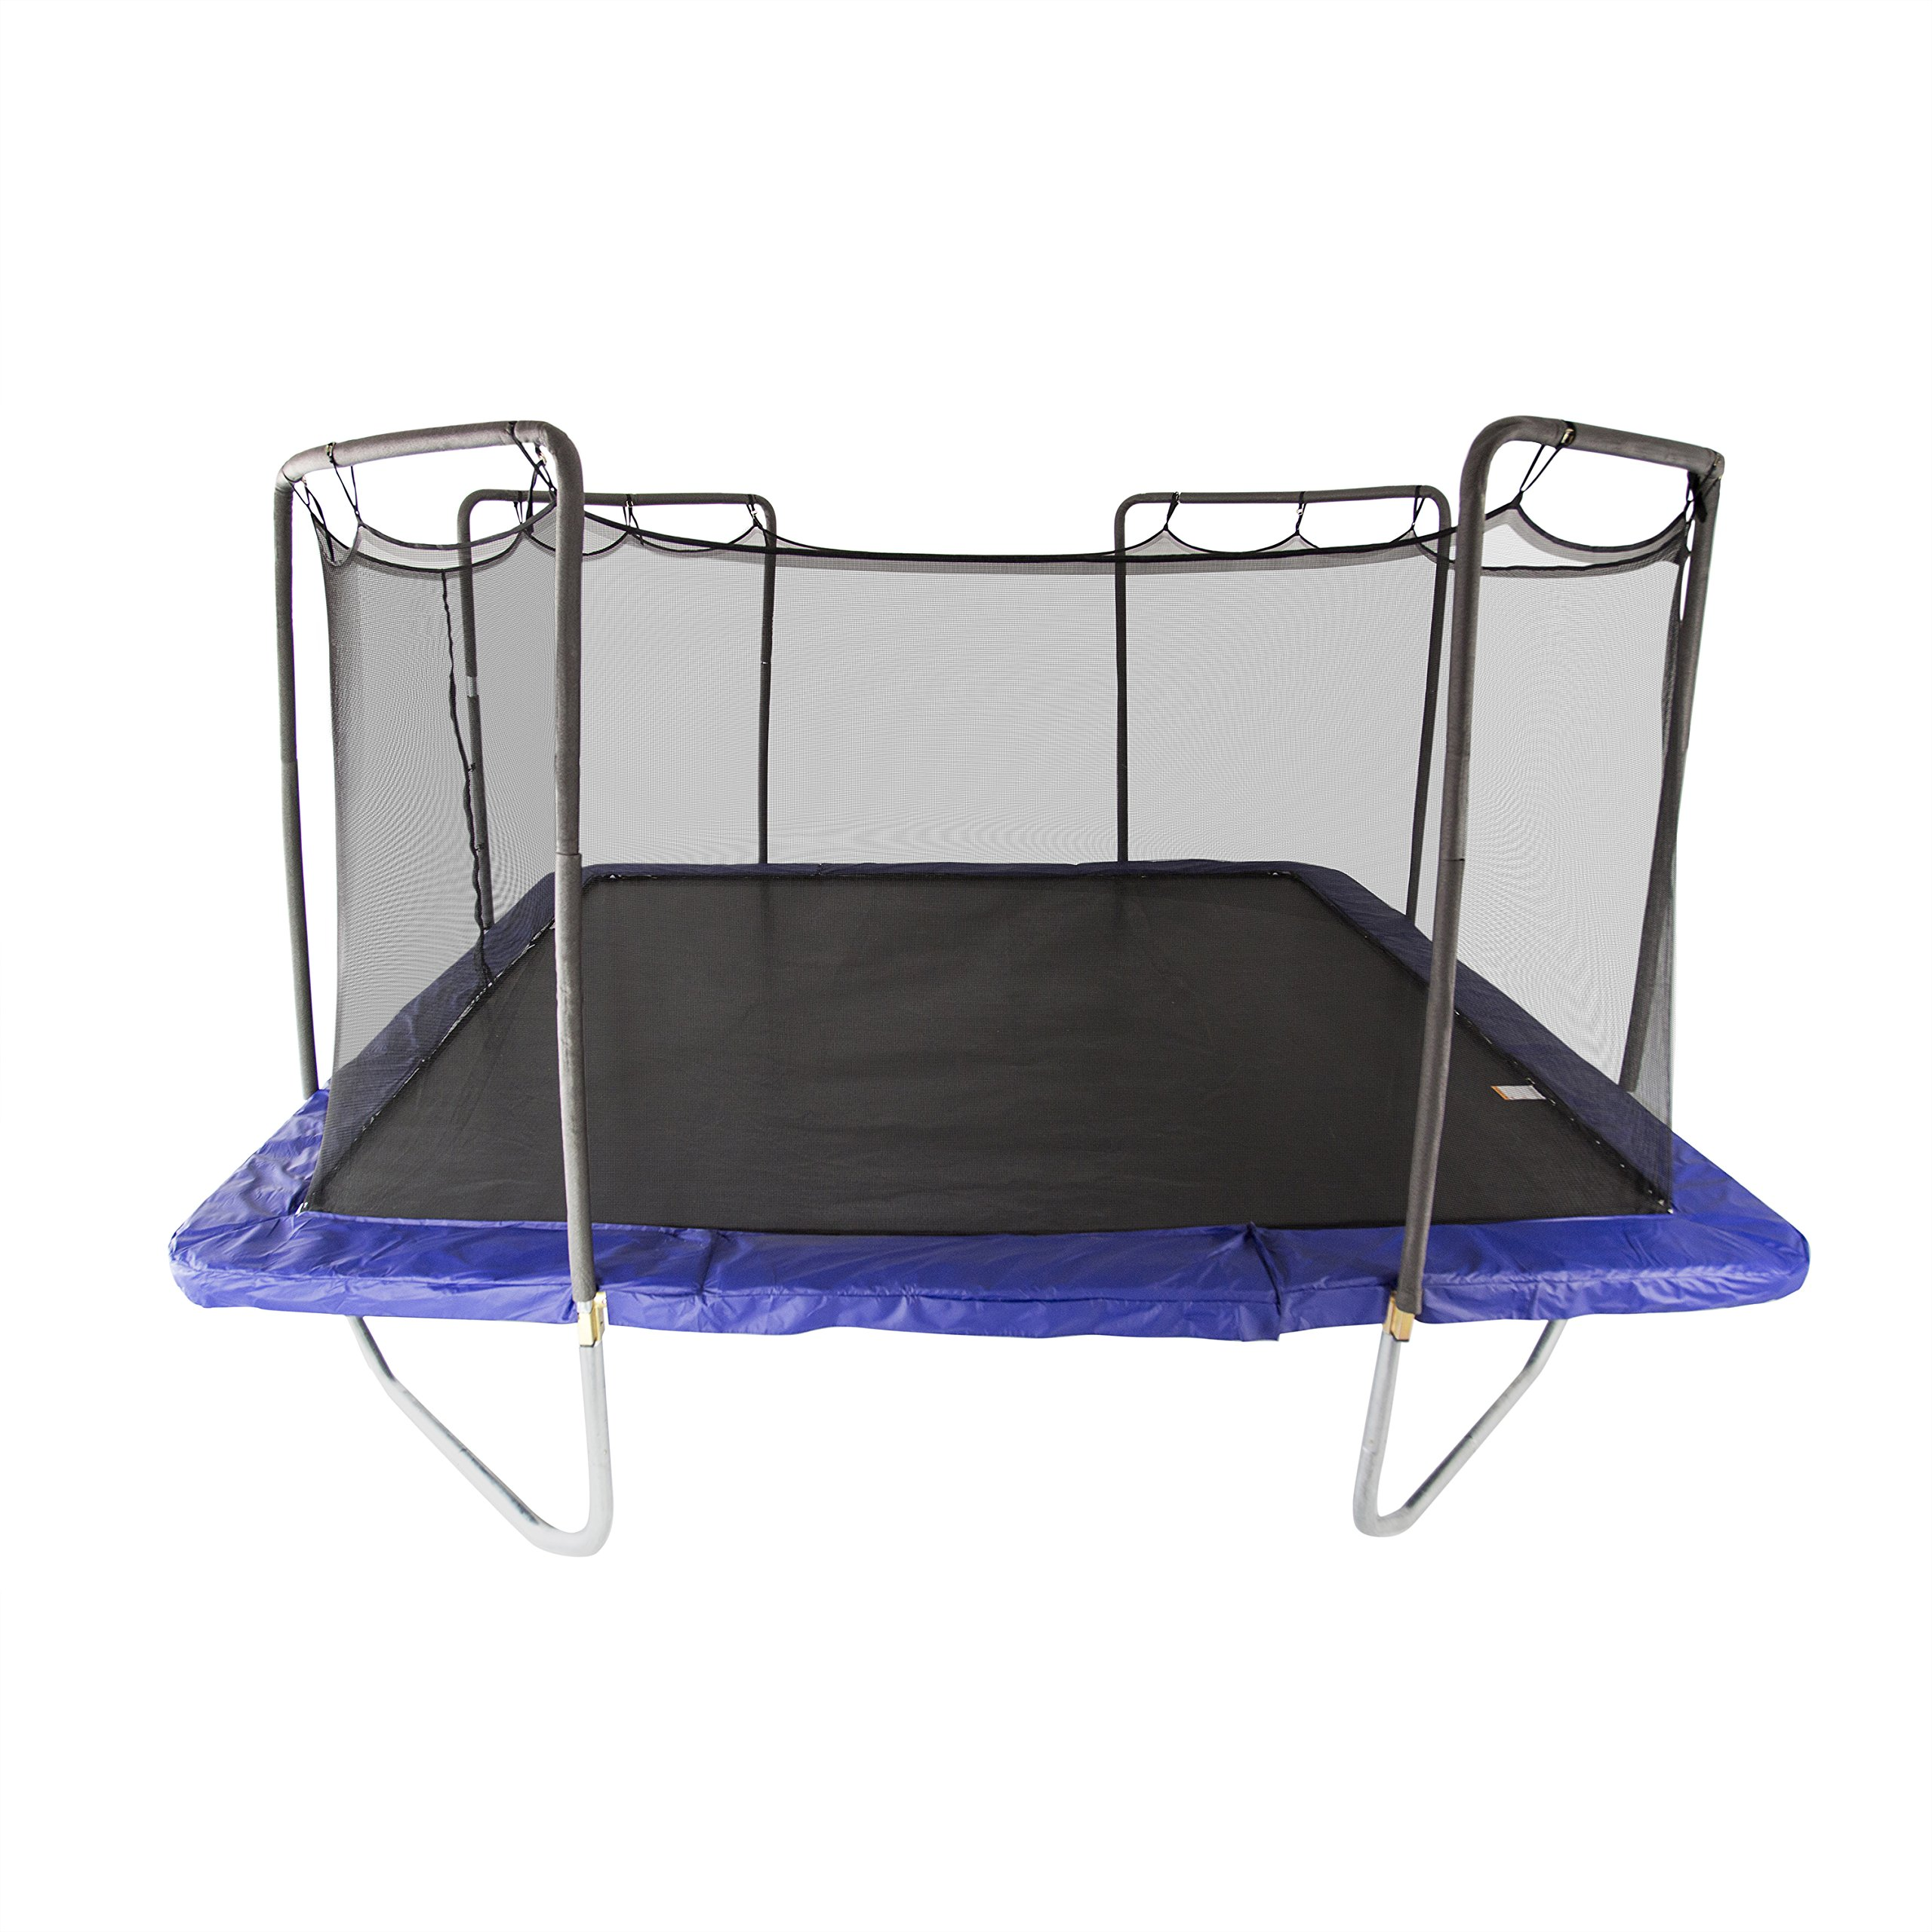 Skywalker Trampolines 15-Foot Square Trampoline with Enclosure Net - Added Safety Features - Meets or Exceeds ASTM - Made to Last - Extra Jumping Space by Skywalker Trampolines